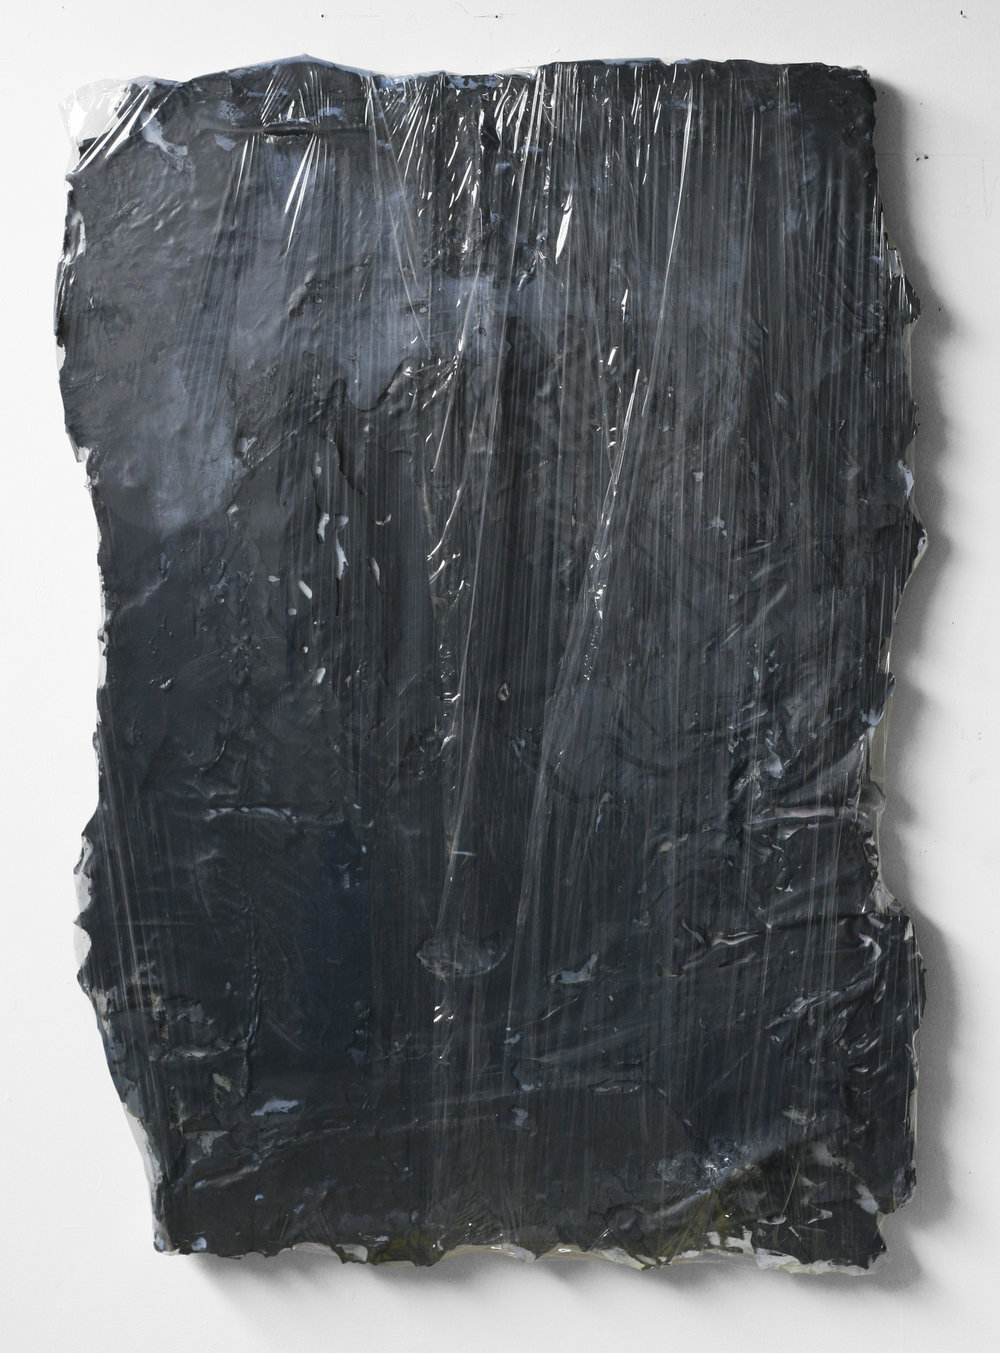 Untitled, 2011  wood, resin, fabric, acrylic, plastic  30 x 48""